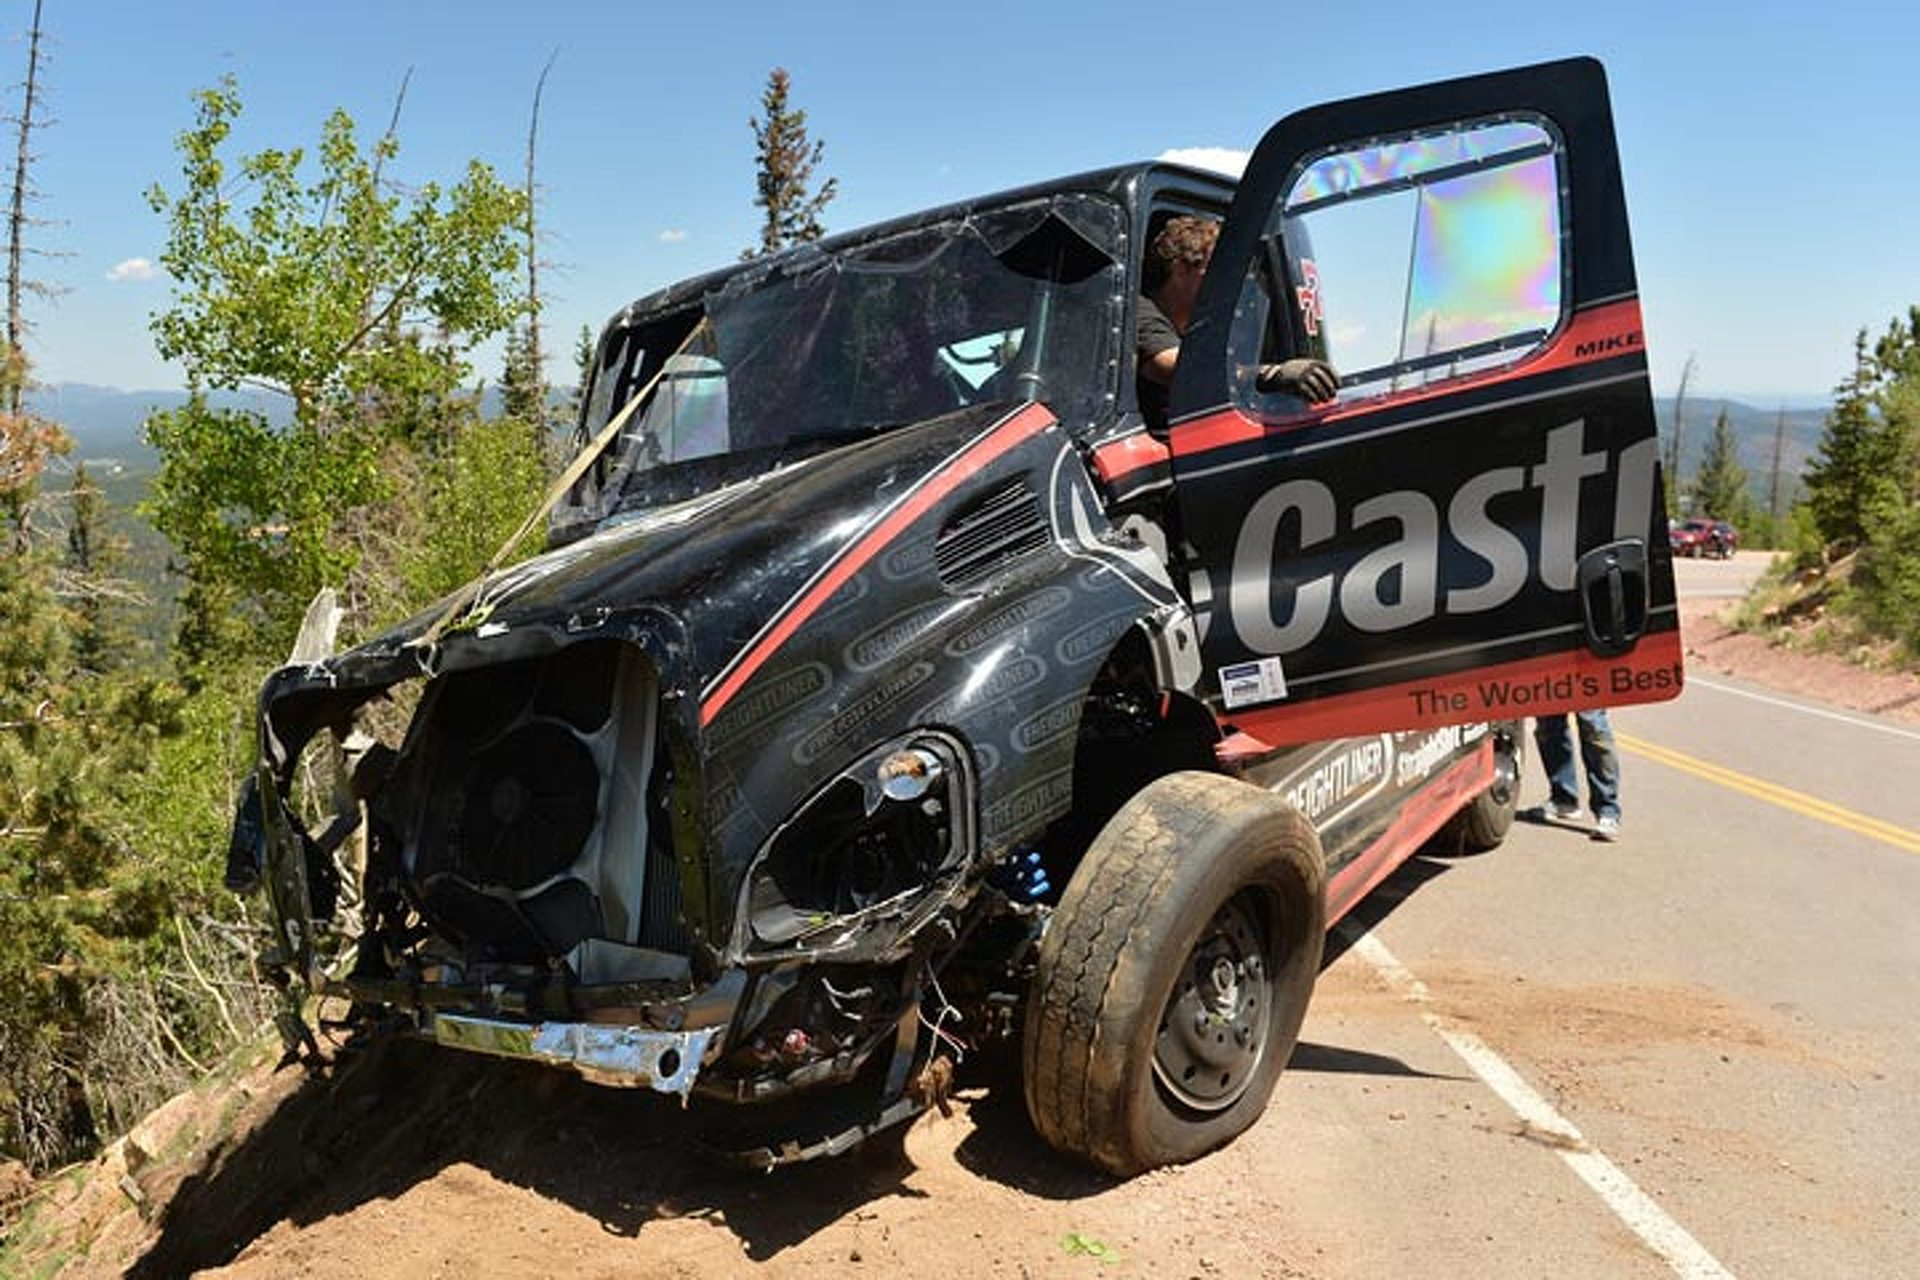 Mike Ryan's Pikes Peak Freightliner Crashes in Practice